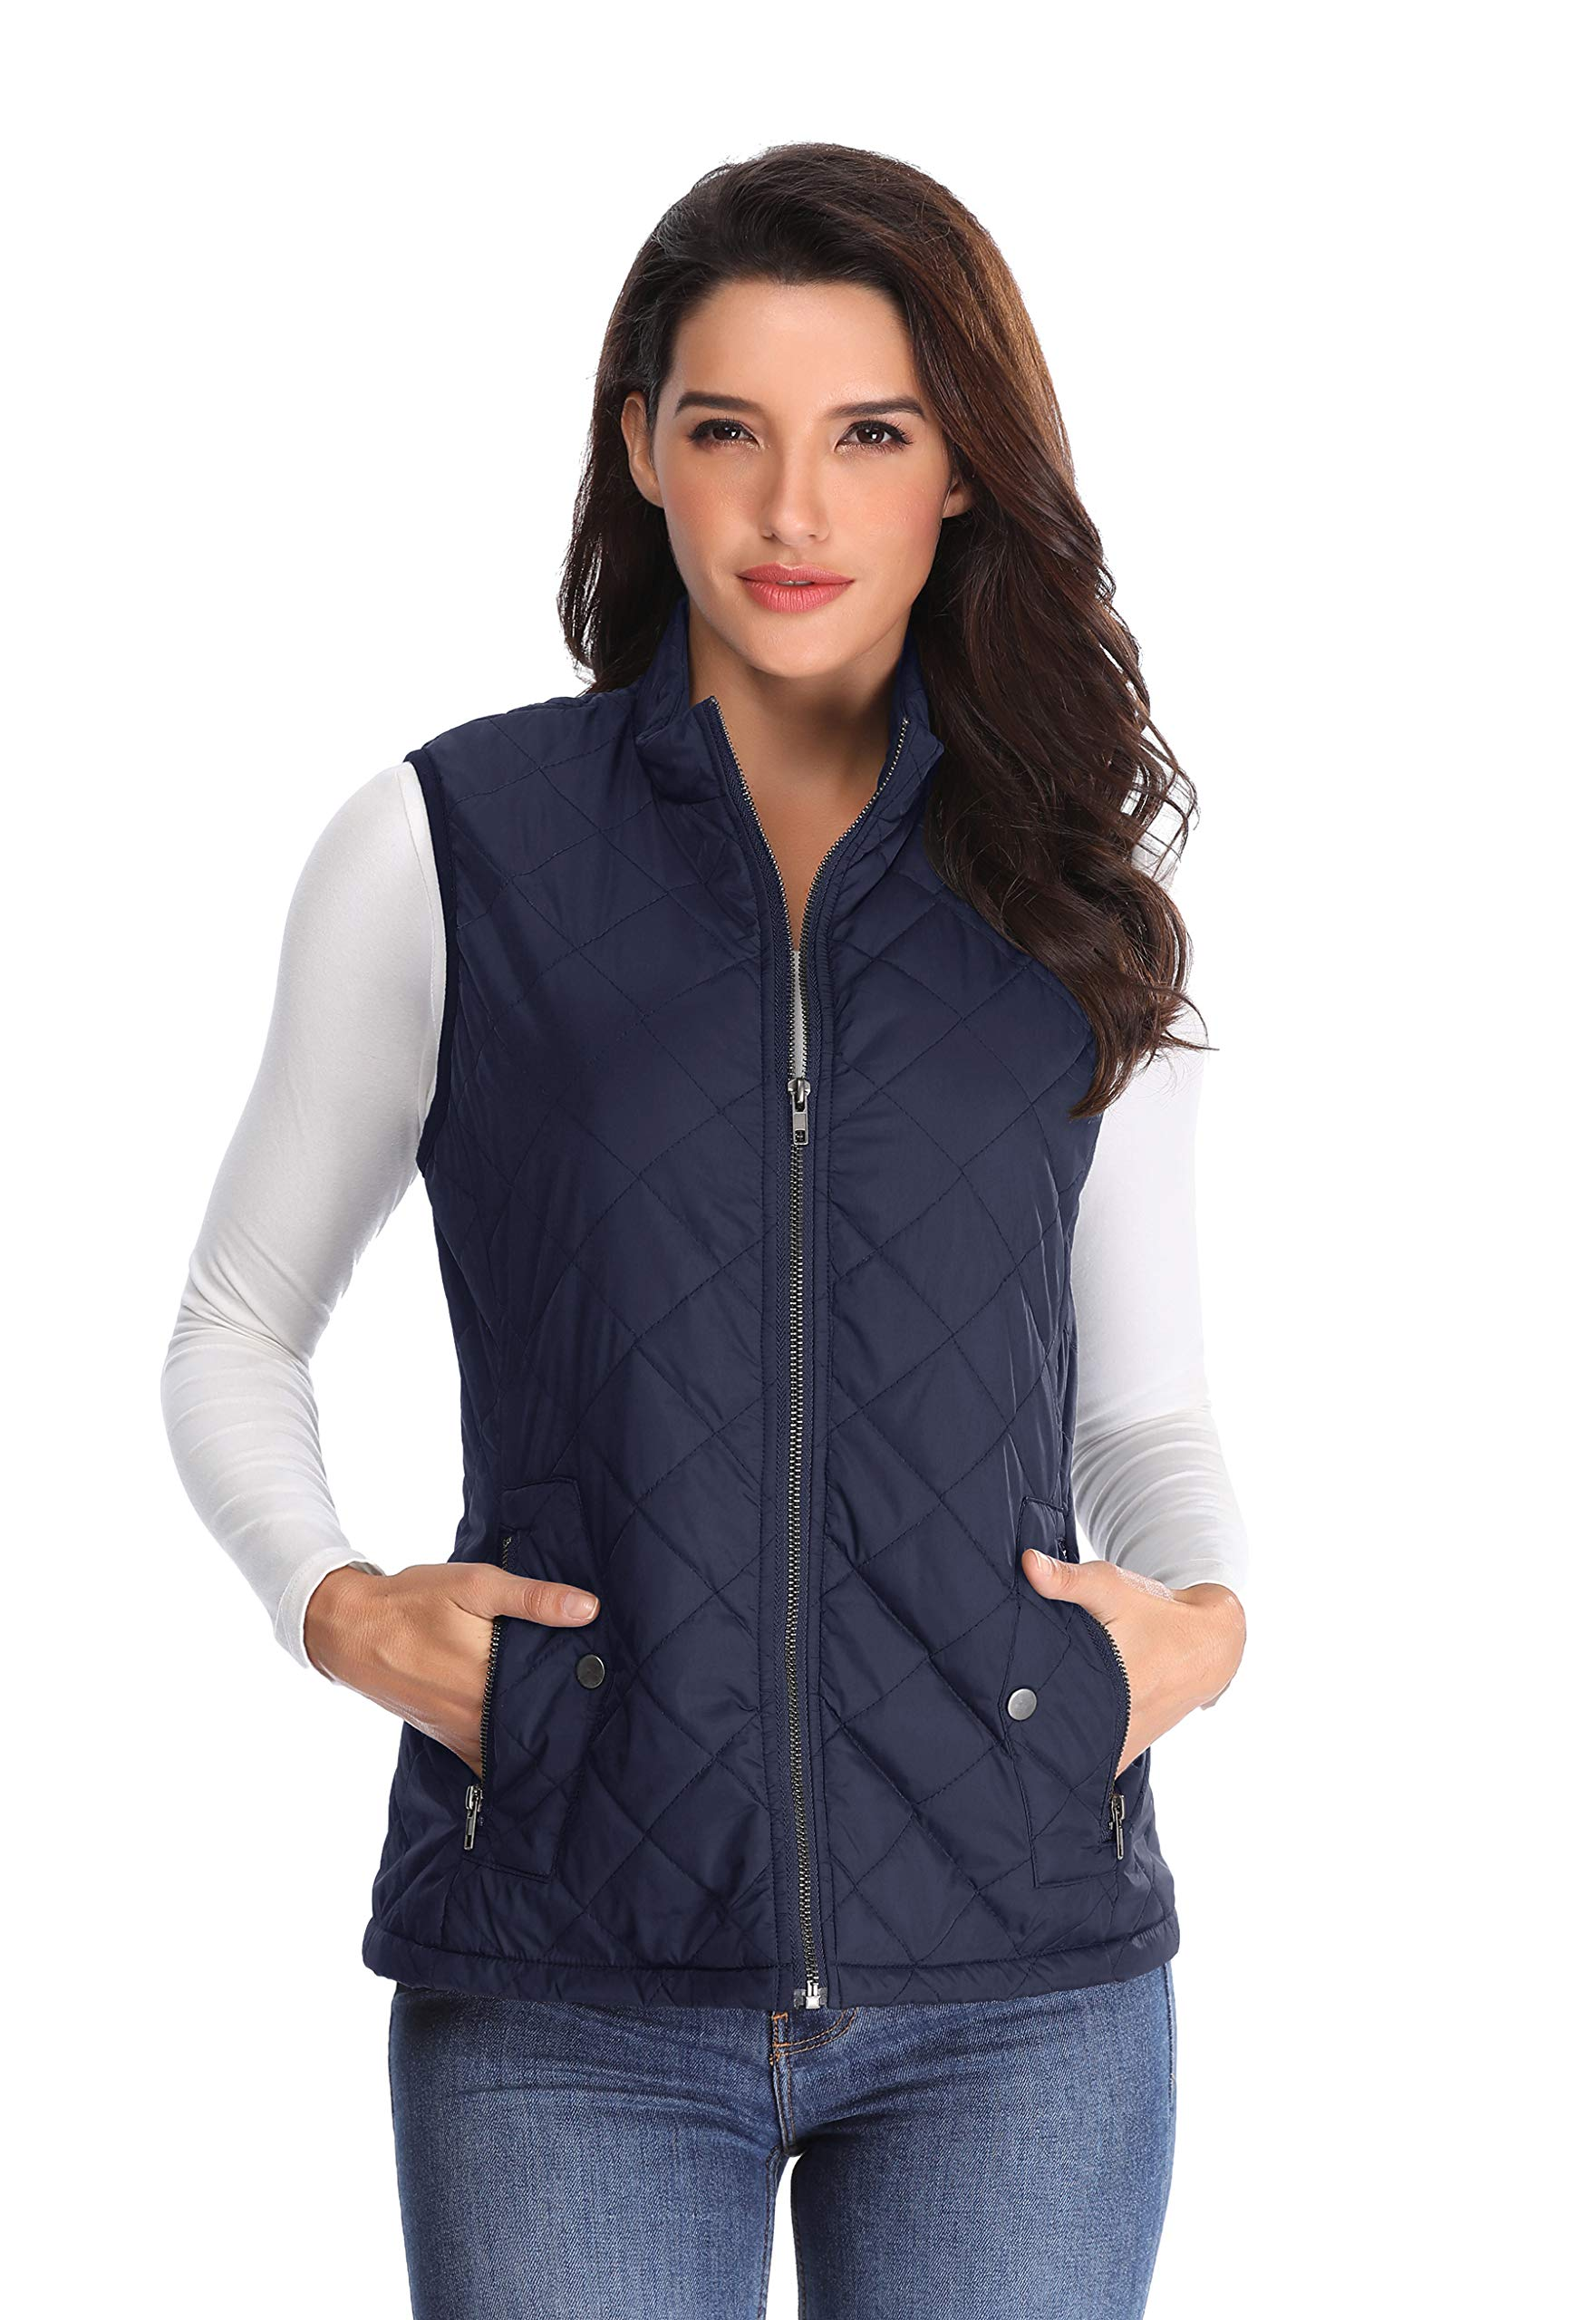 MISS MOLY Women's Lightweight Quilted Zip Vest Stand Collar Gilet Padded Sleeveless Gilet Vest-Navy Blue M by MISS MOLY